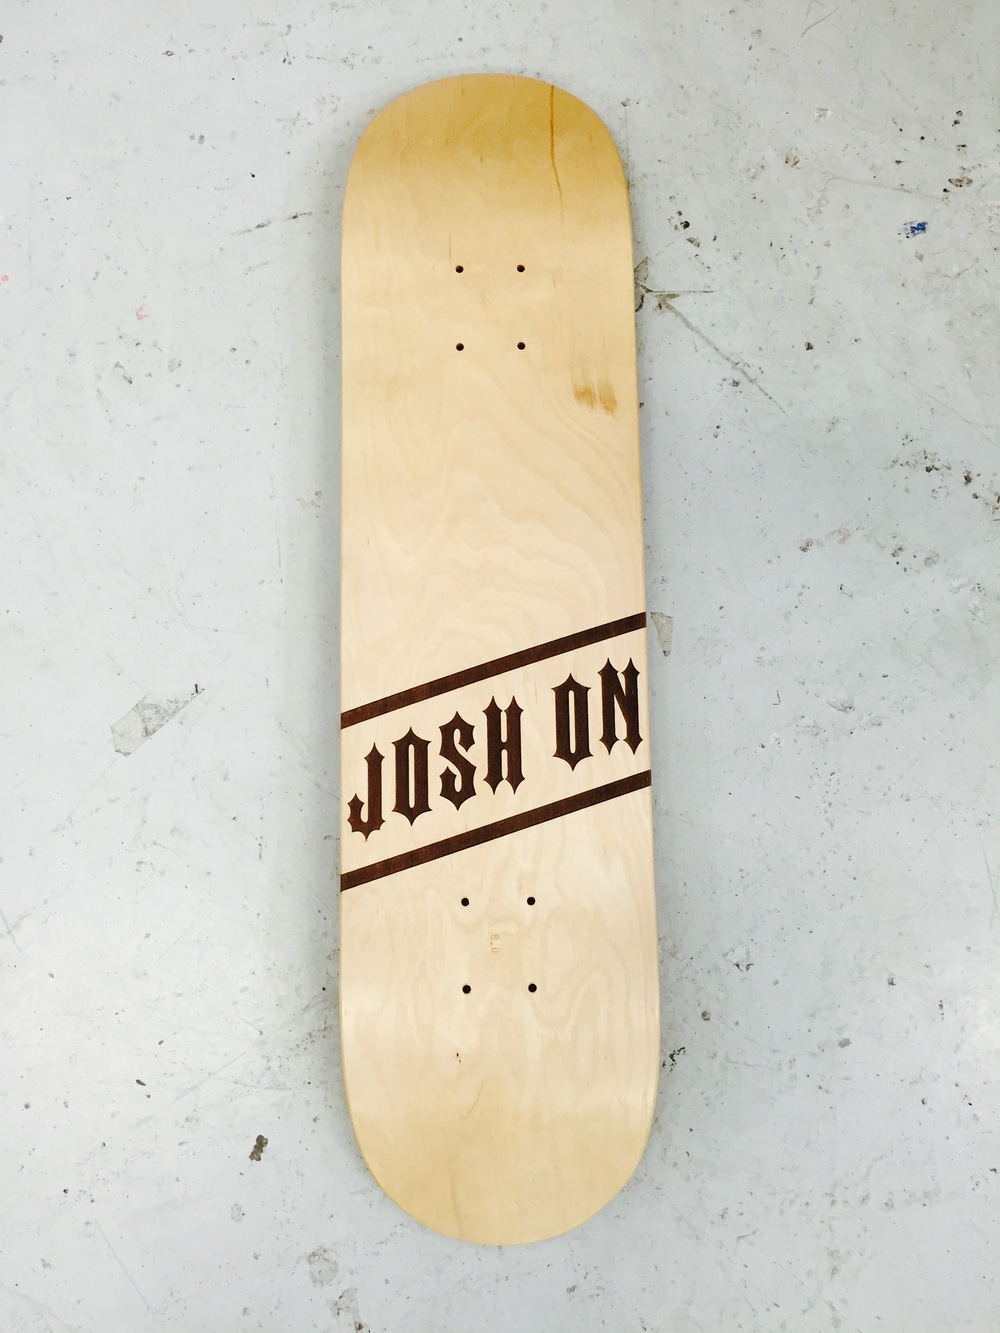 JOSH ON - SKATEBOARDER